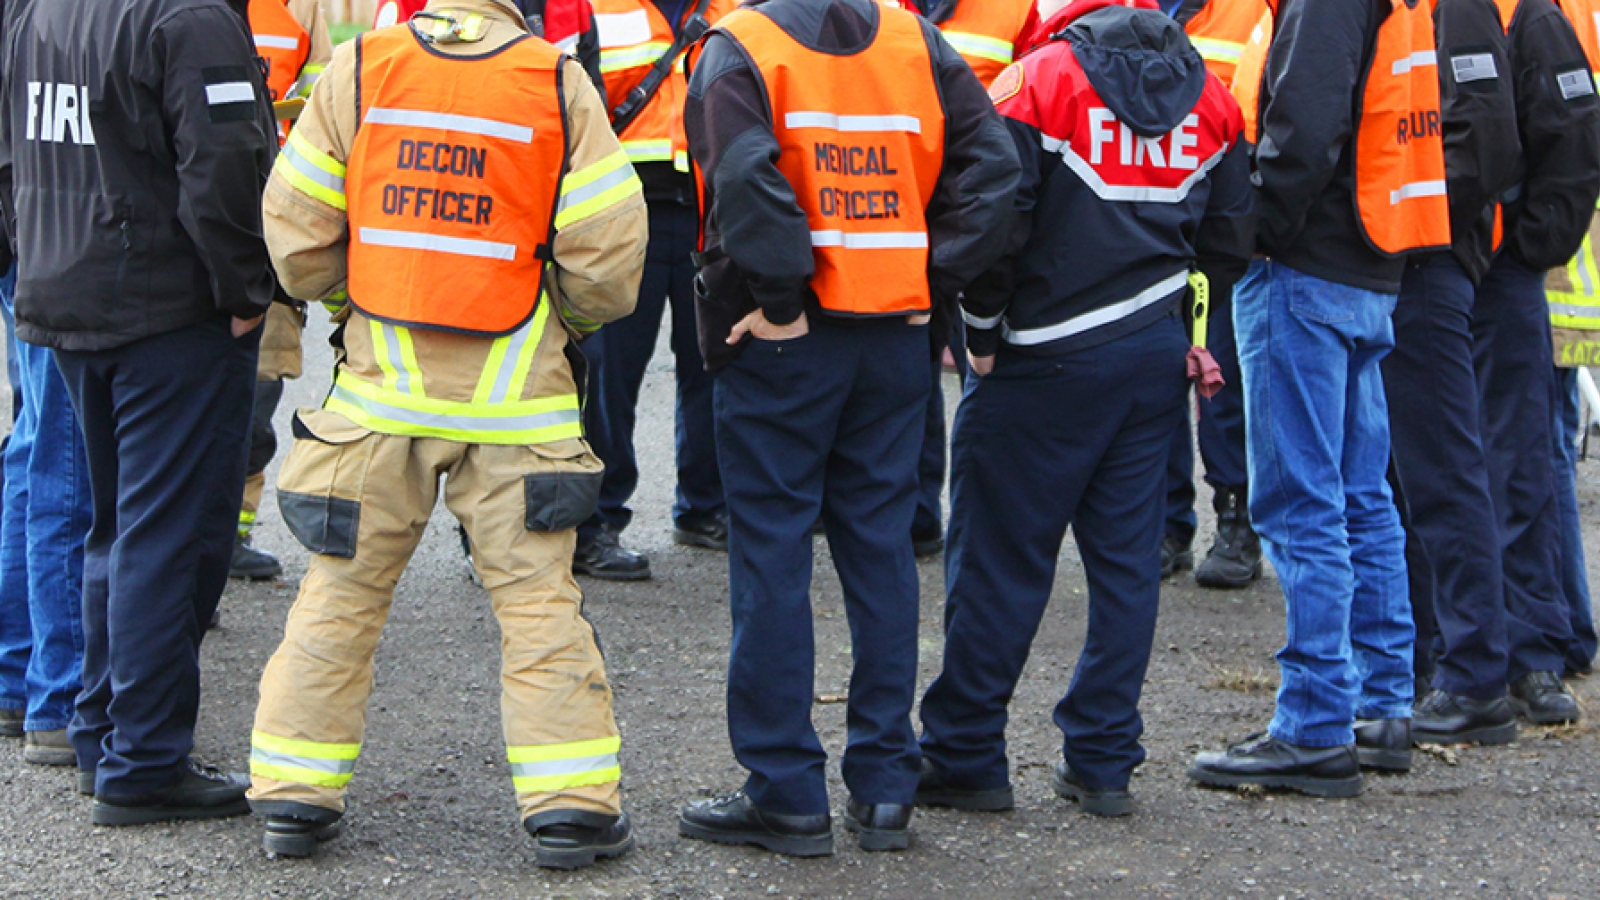 a group of emergency responders at a briefing